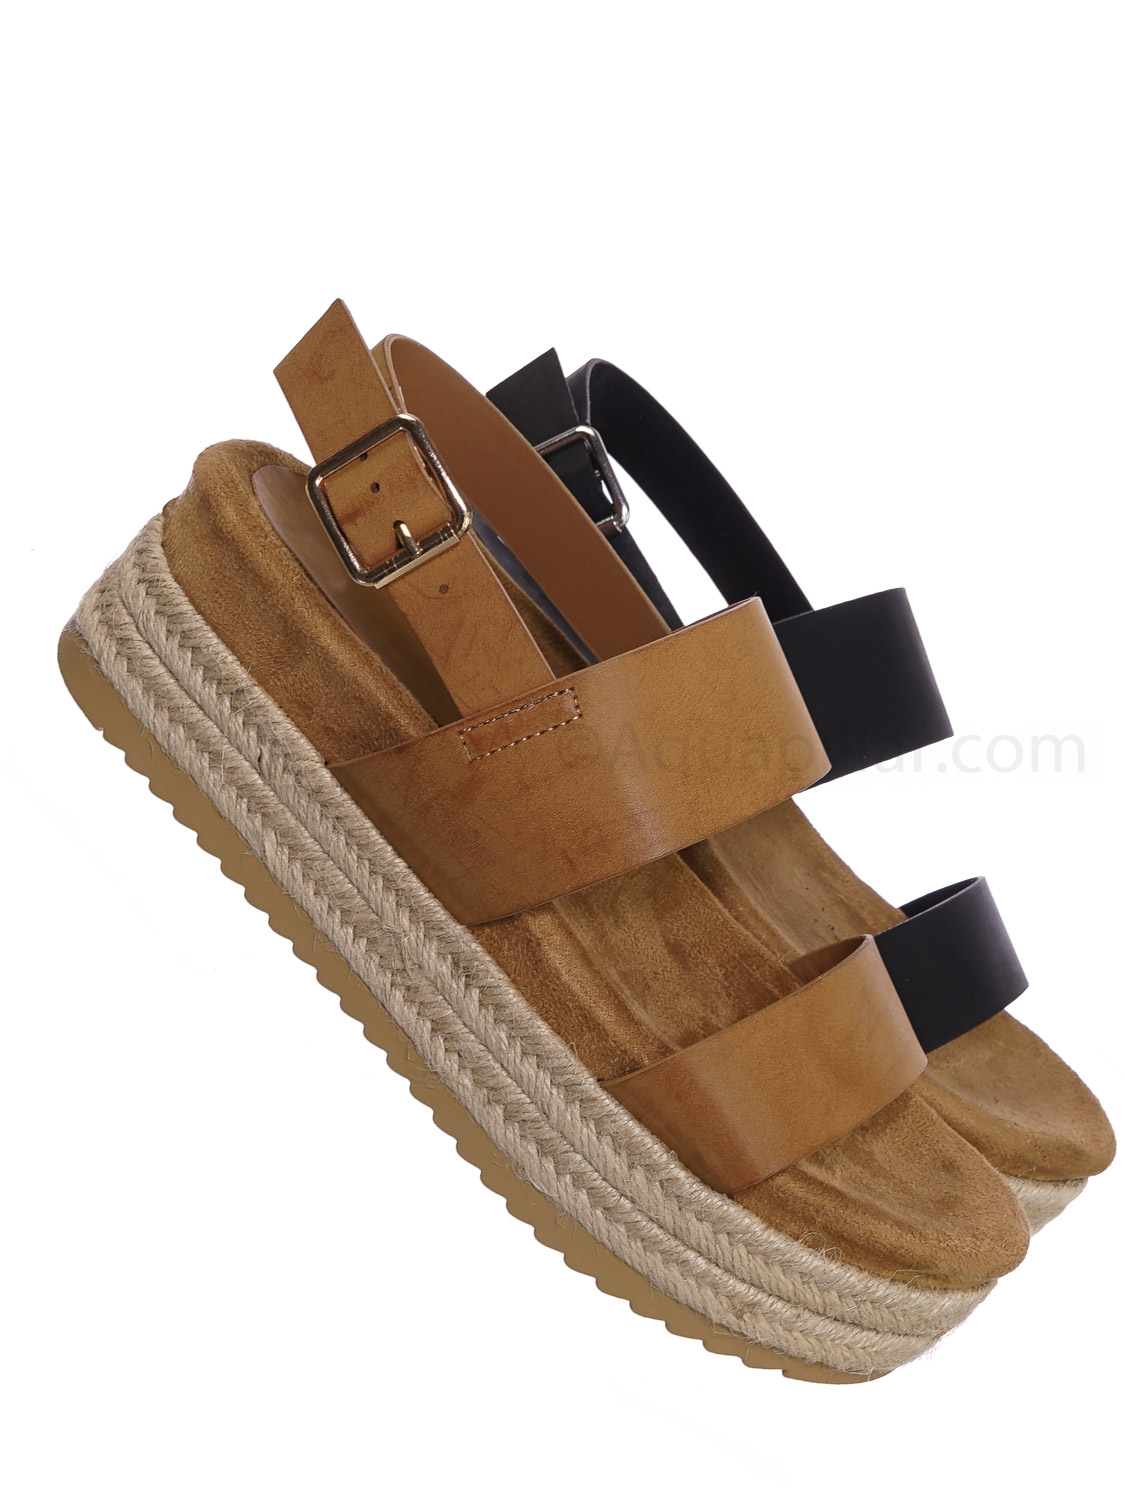 Riri26 by Bamboo, Retro Espadrilles Platform Wedge Flatform - Footbed Molded Casual Sandals